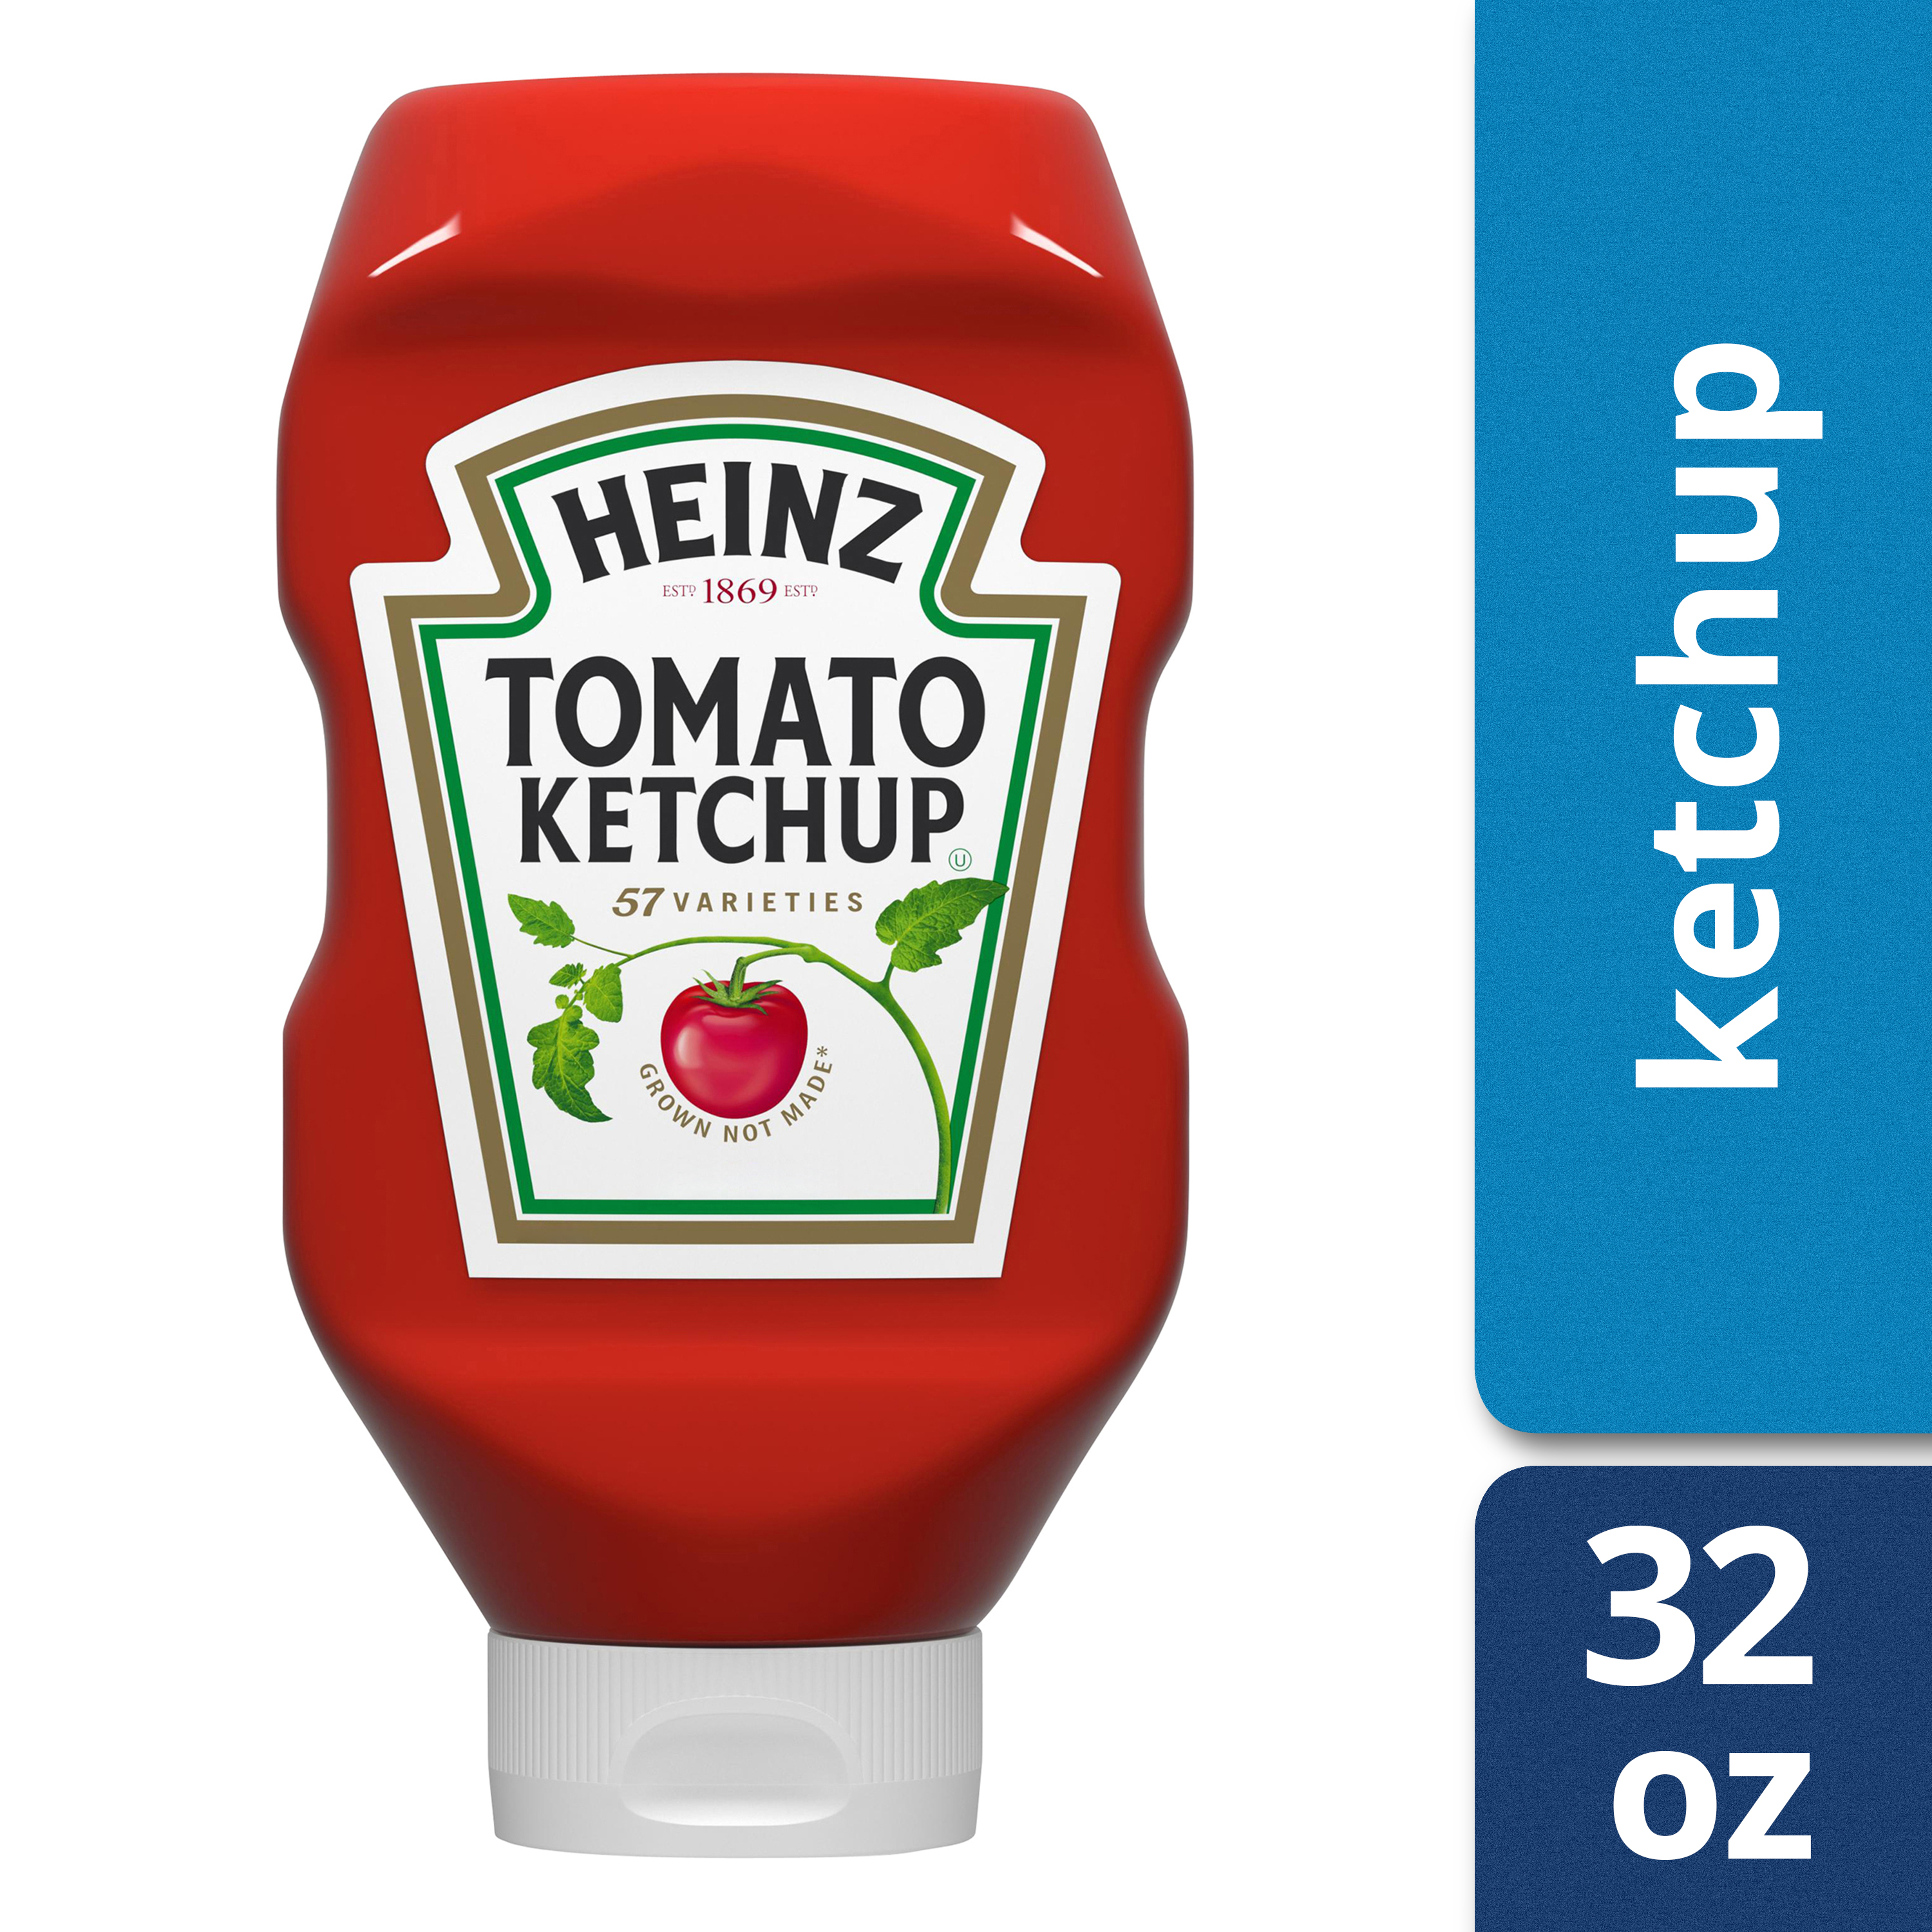 Heinz Tomato Ketchup 32 oz. Bottle